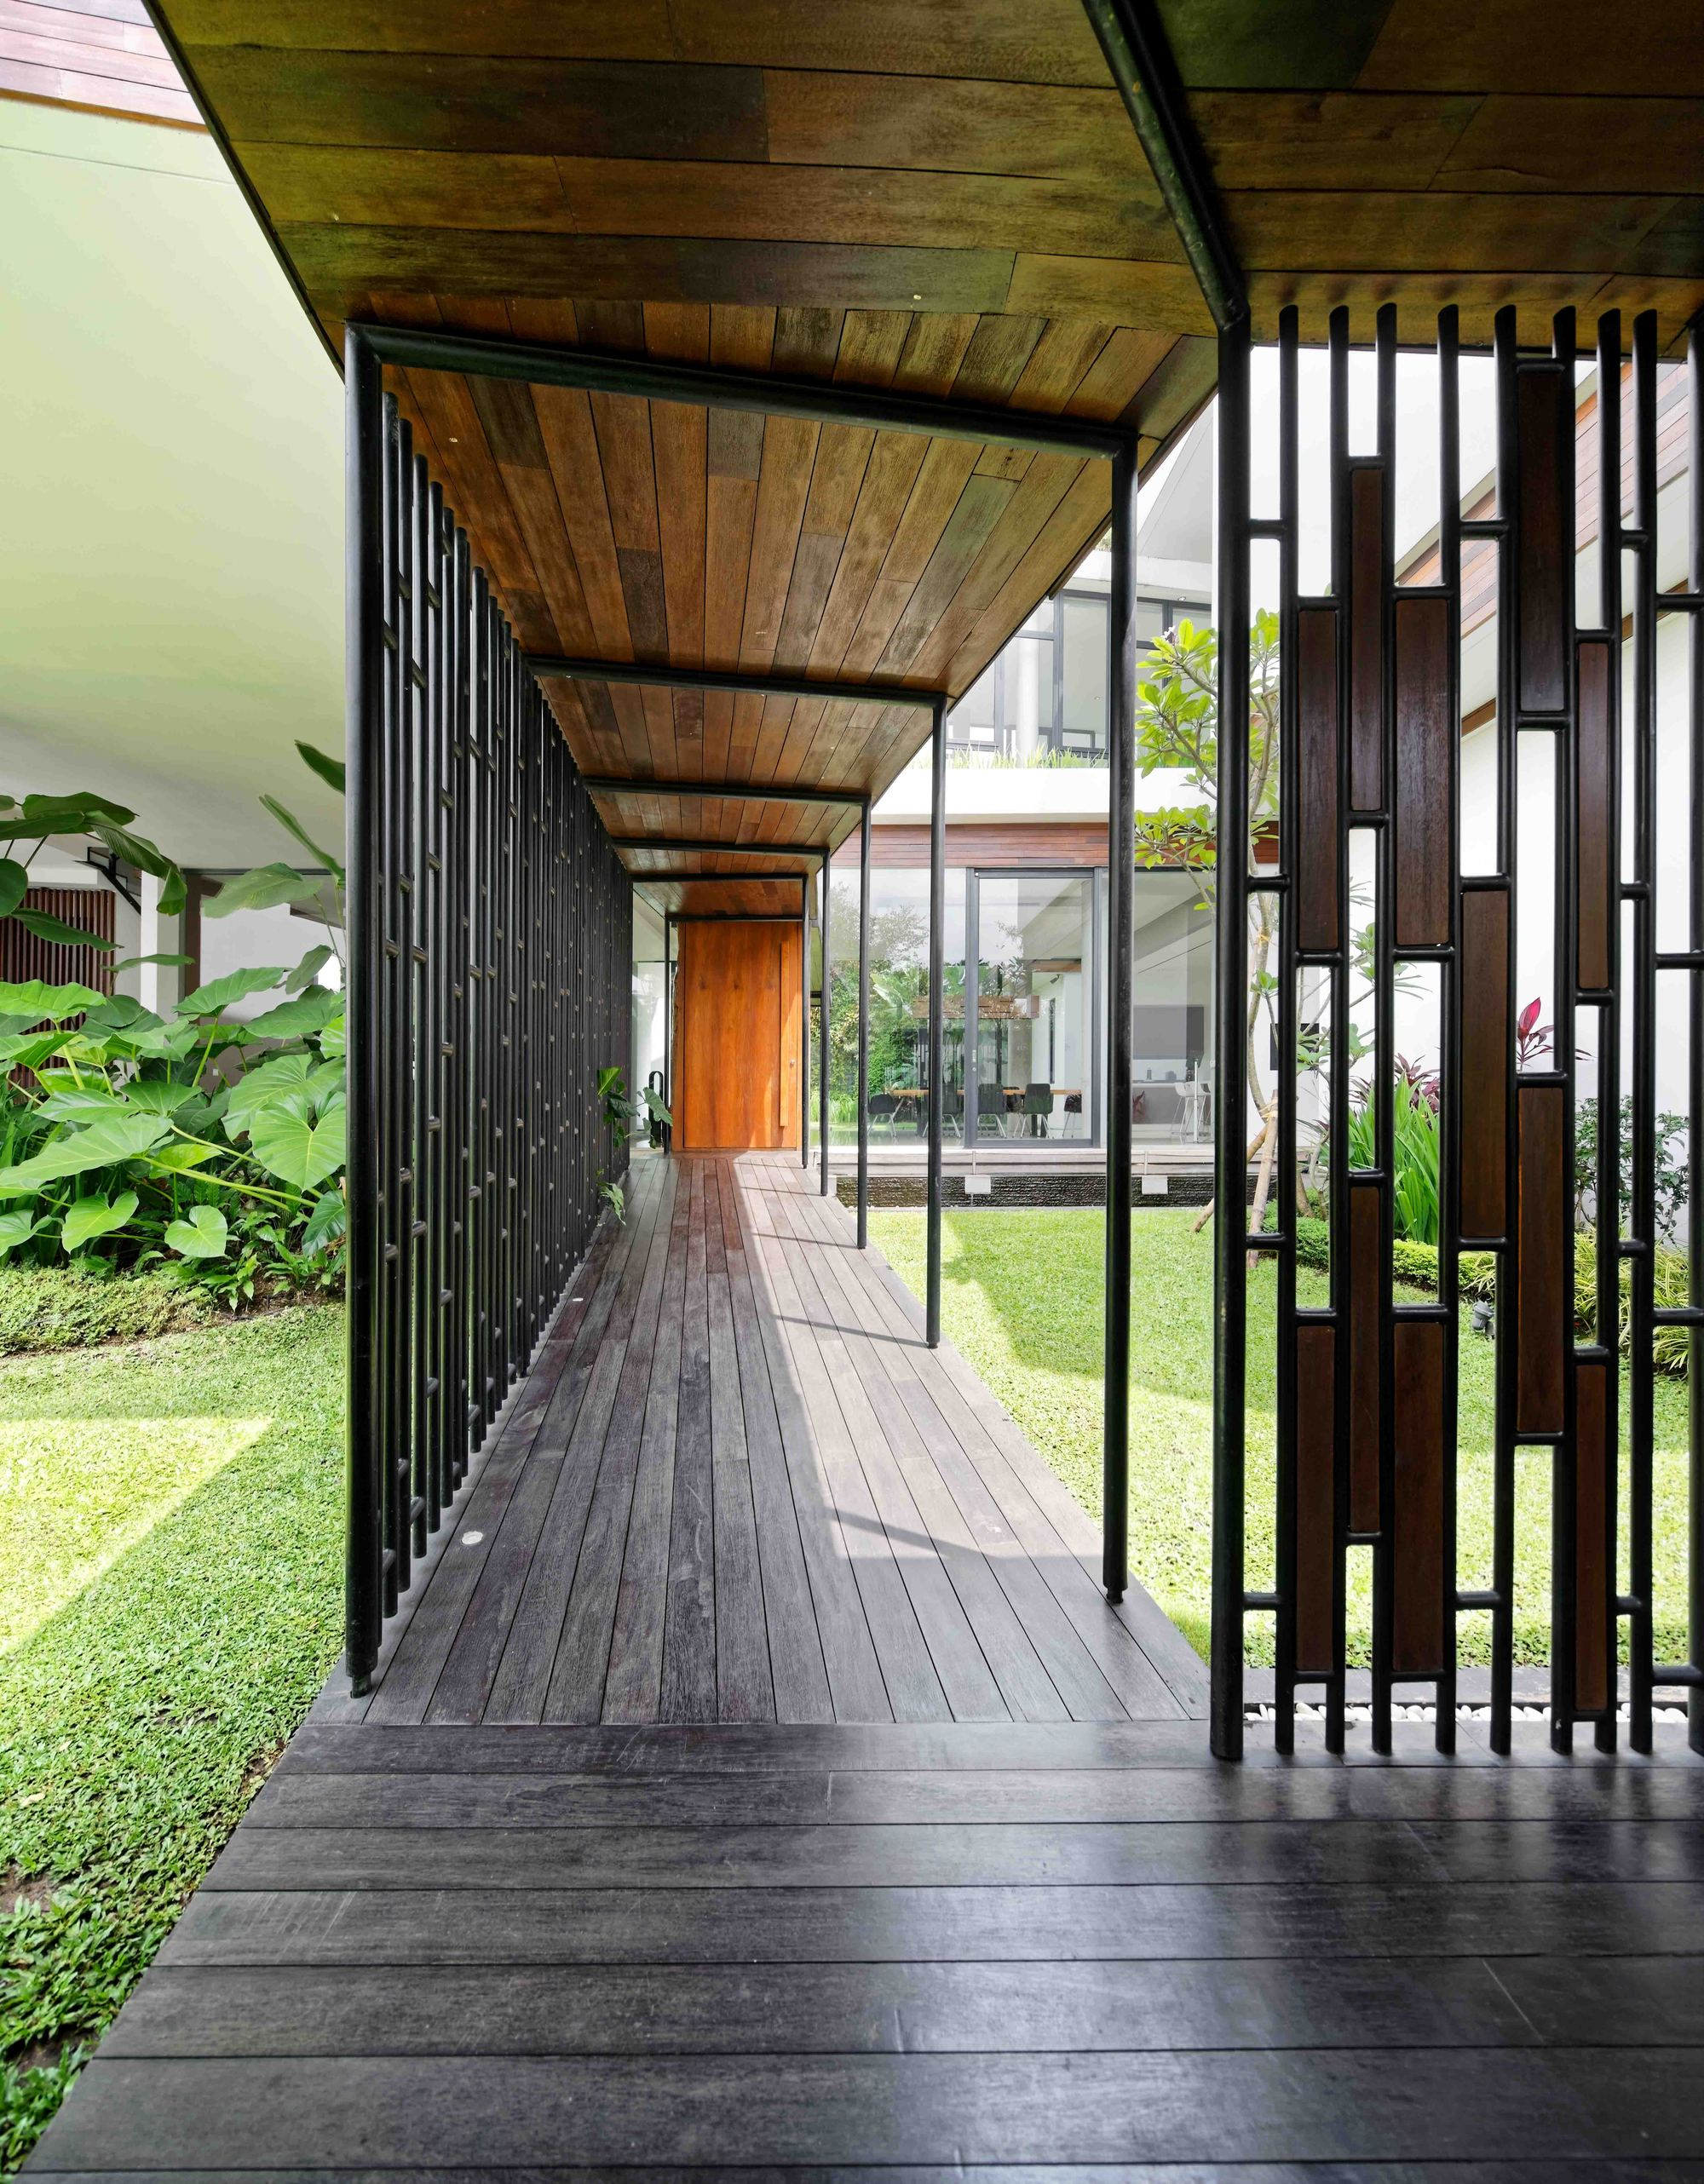 Wooden decks and corridors outside the house connect the different structures